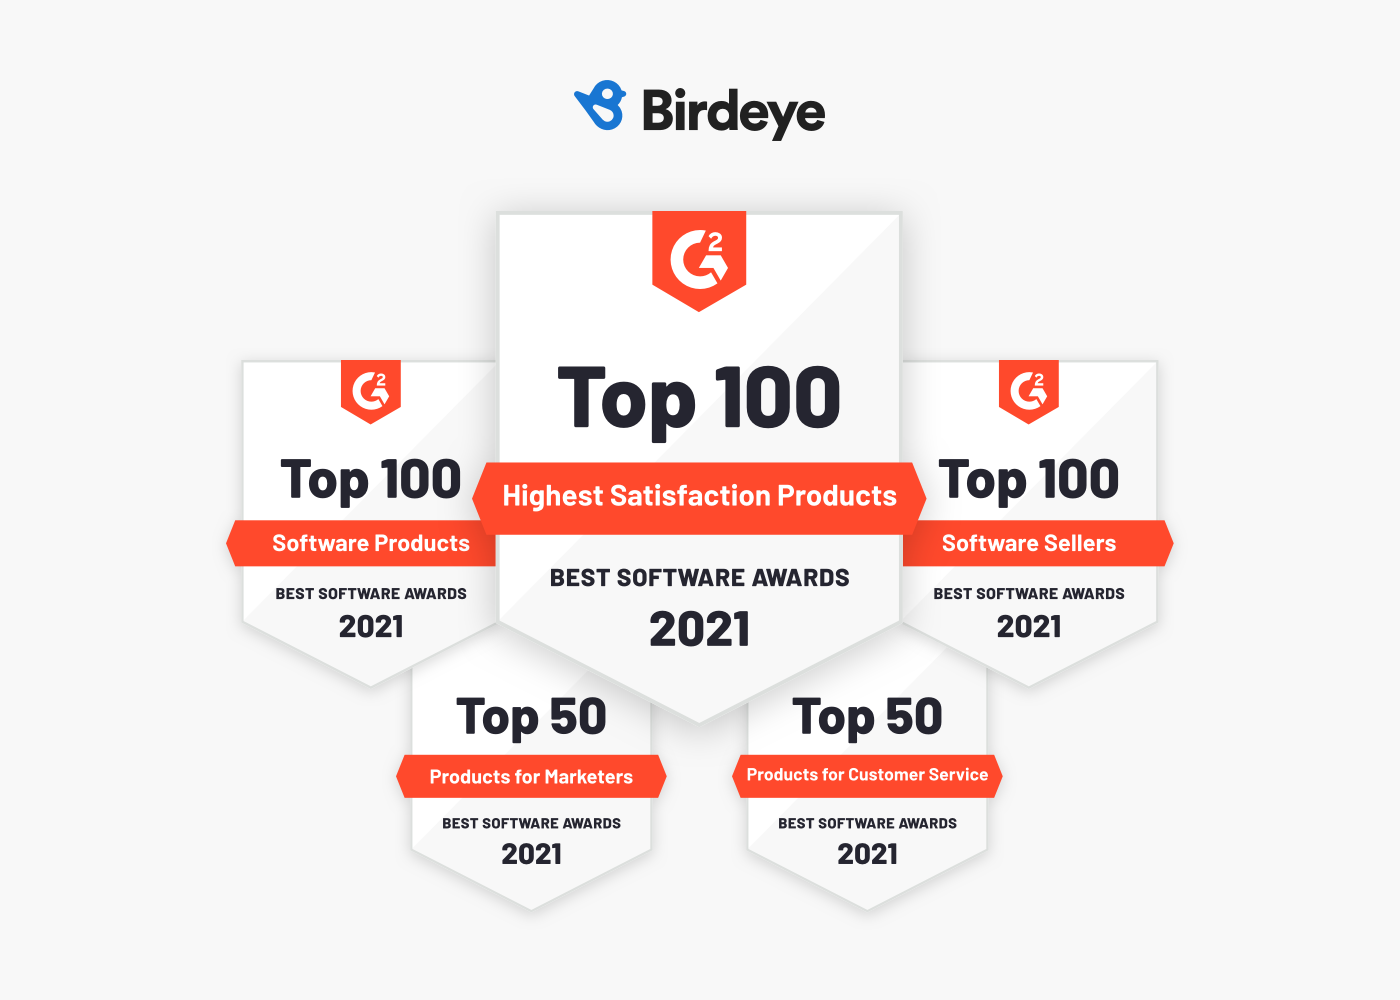 Birdeye Soars To Top Of G2 Again Winning 2021 Awards In Multiple Categories 1613674307419